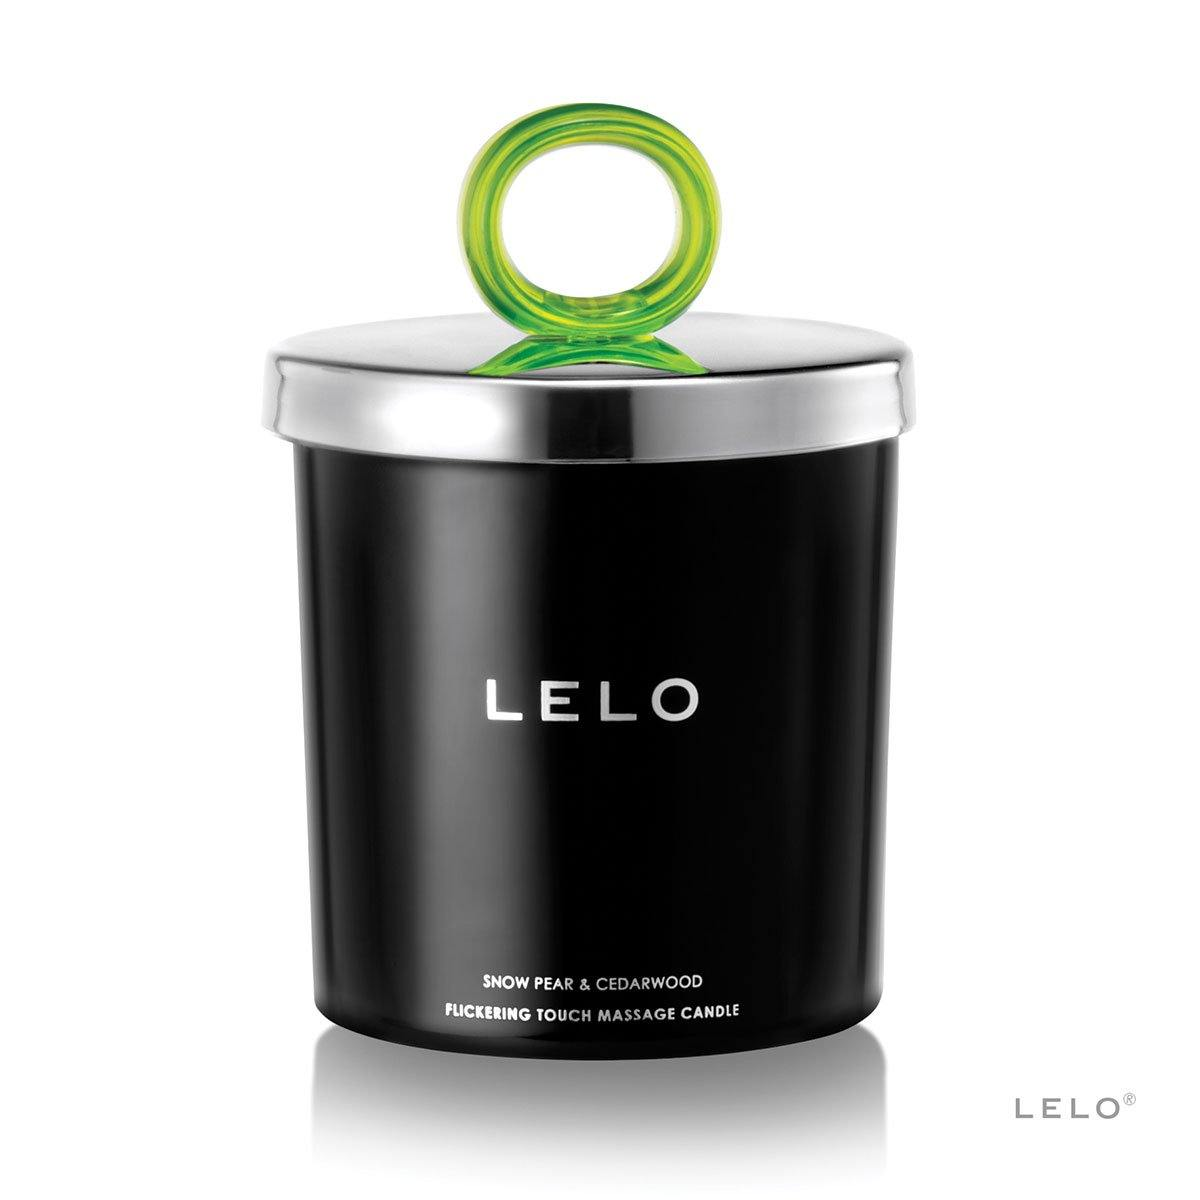 LELO Flickering Touch Massage Candle - Snow Pear/Cedarwood [A00022]